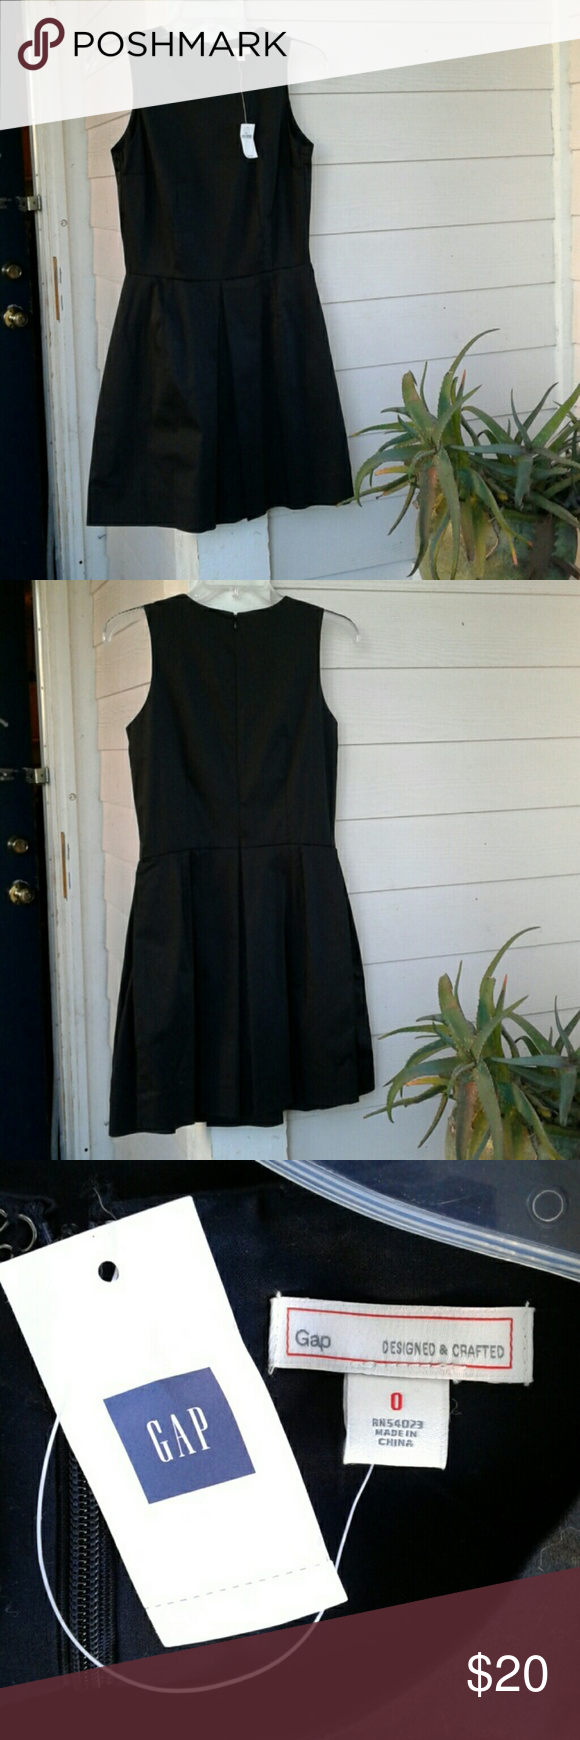 GAP FIT & FLARE BLACK DRESS